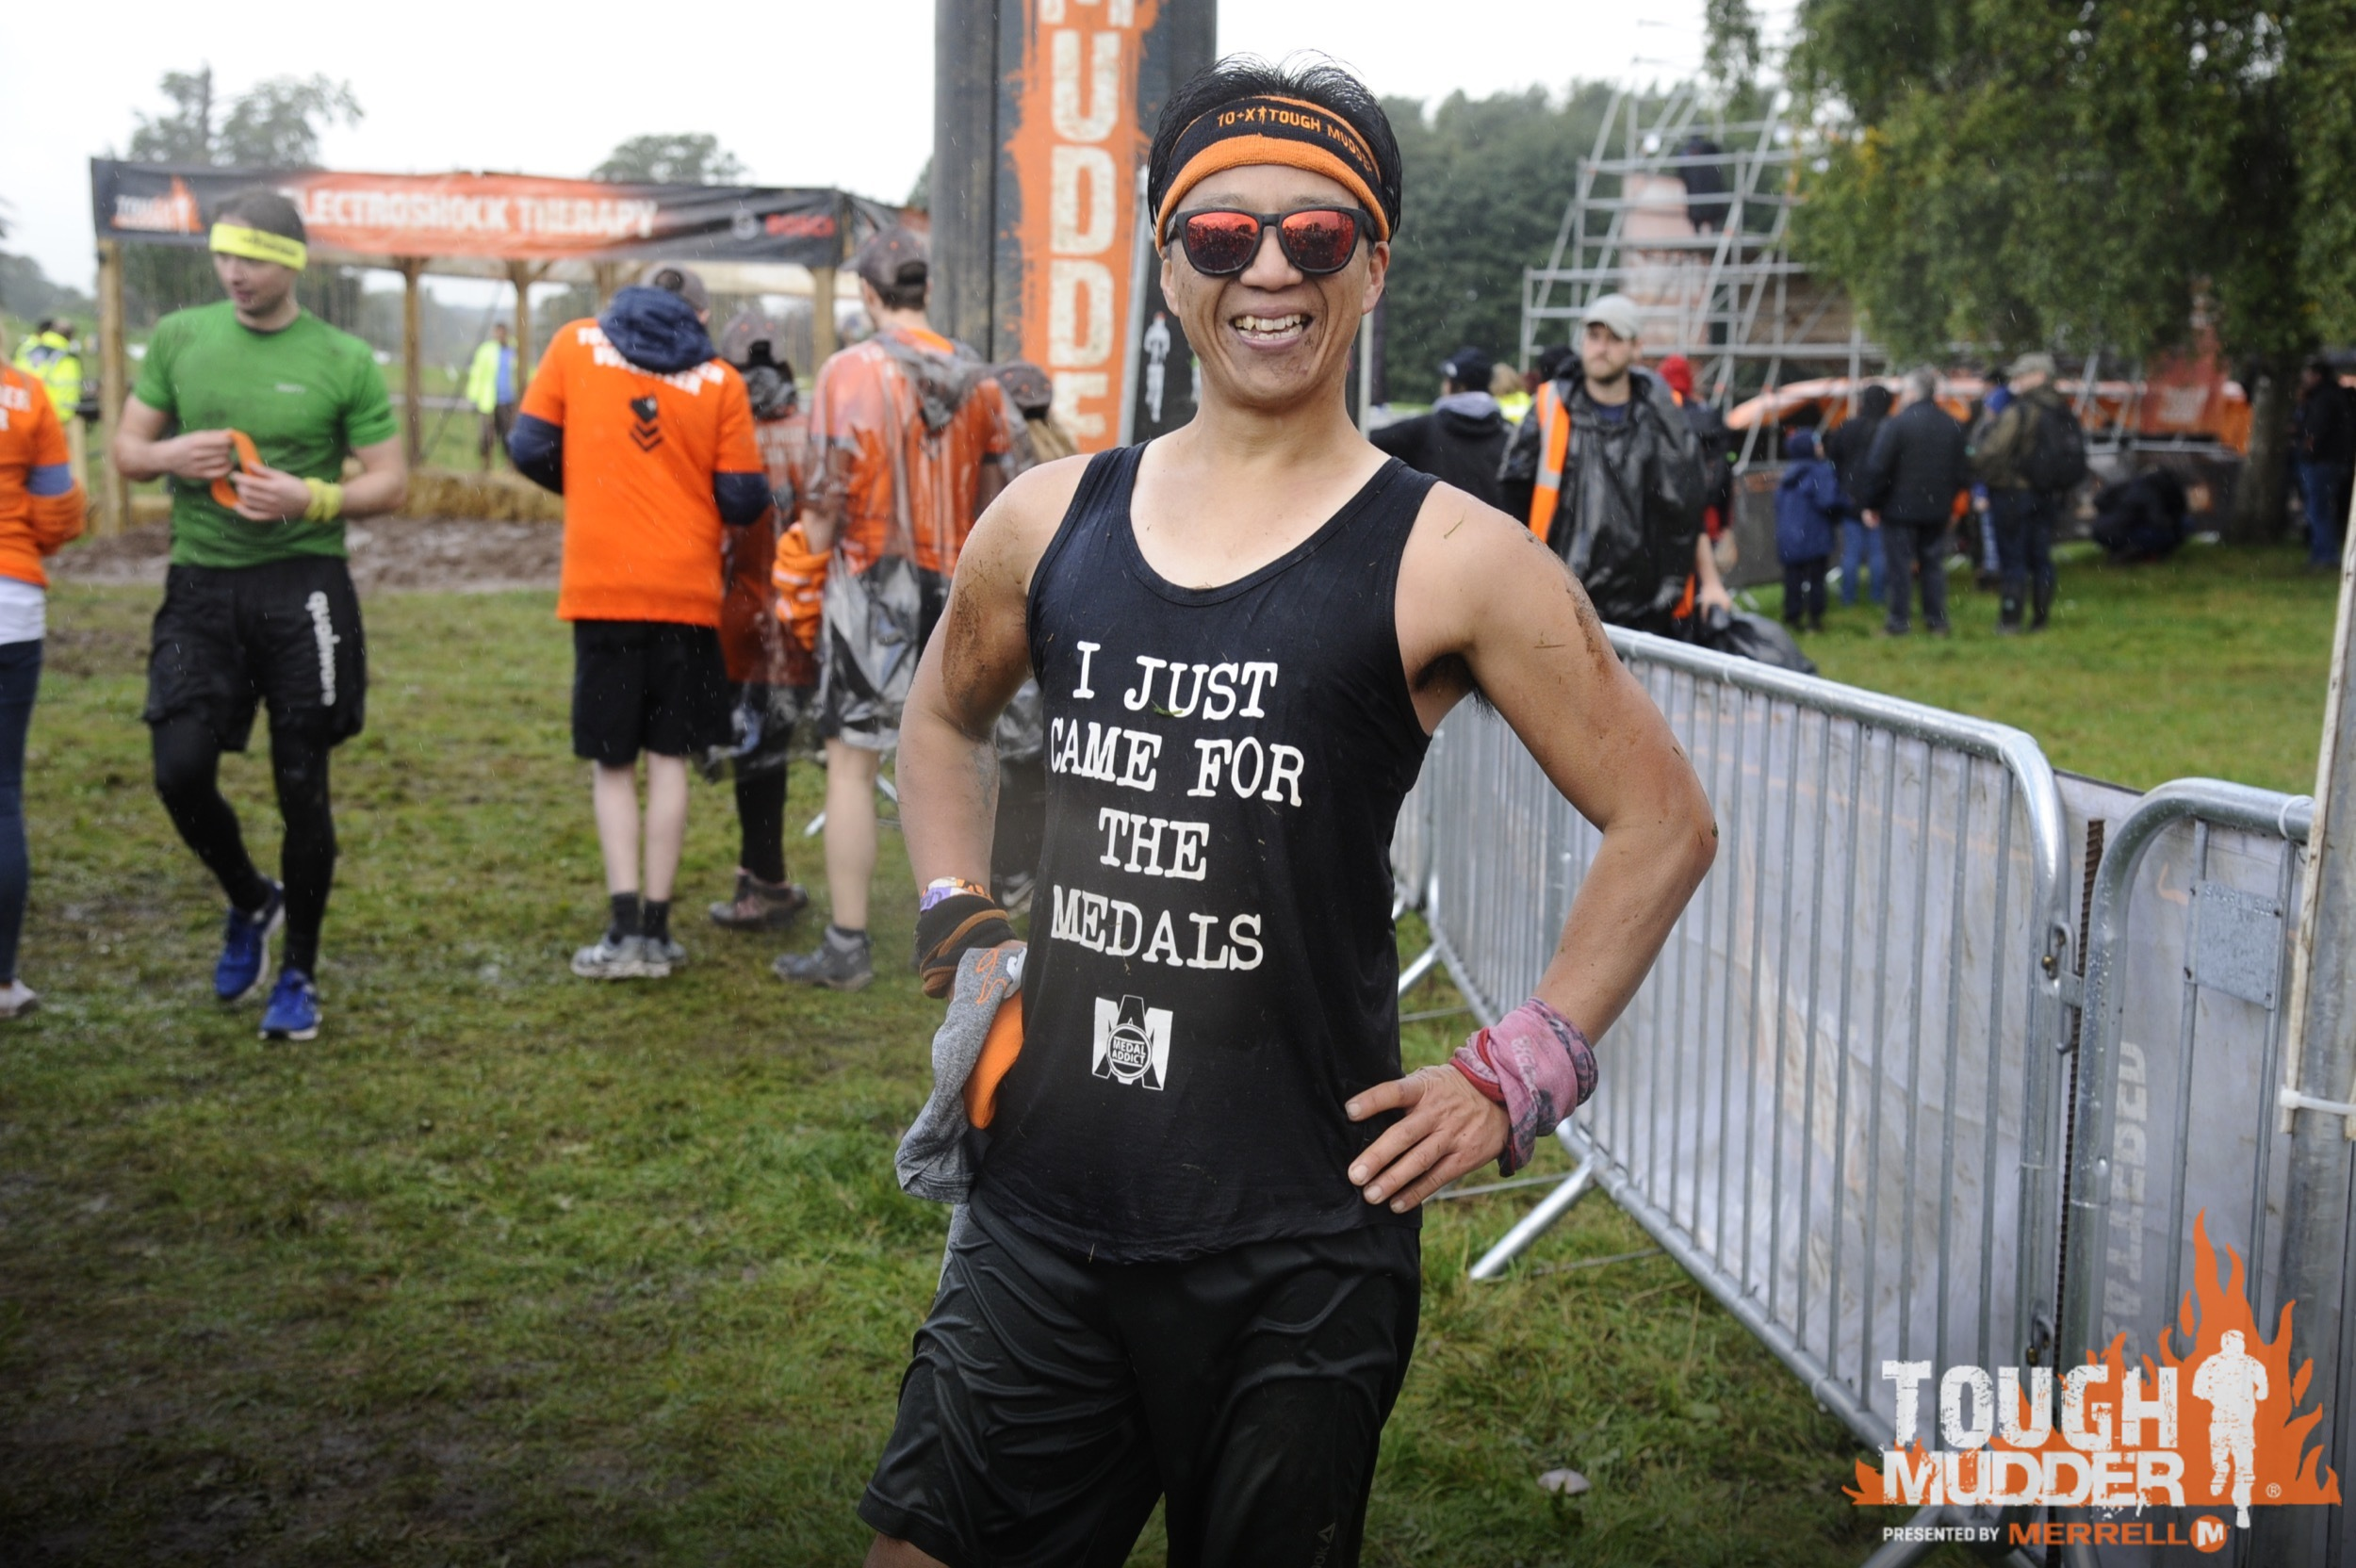 Tough Mudder north west finish Line 2